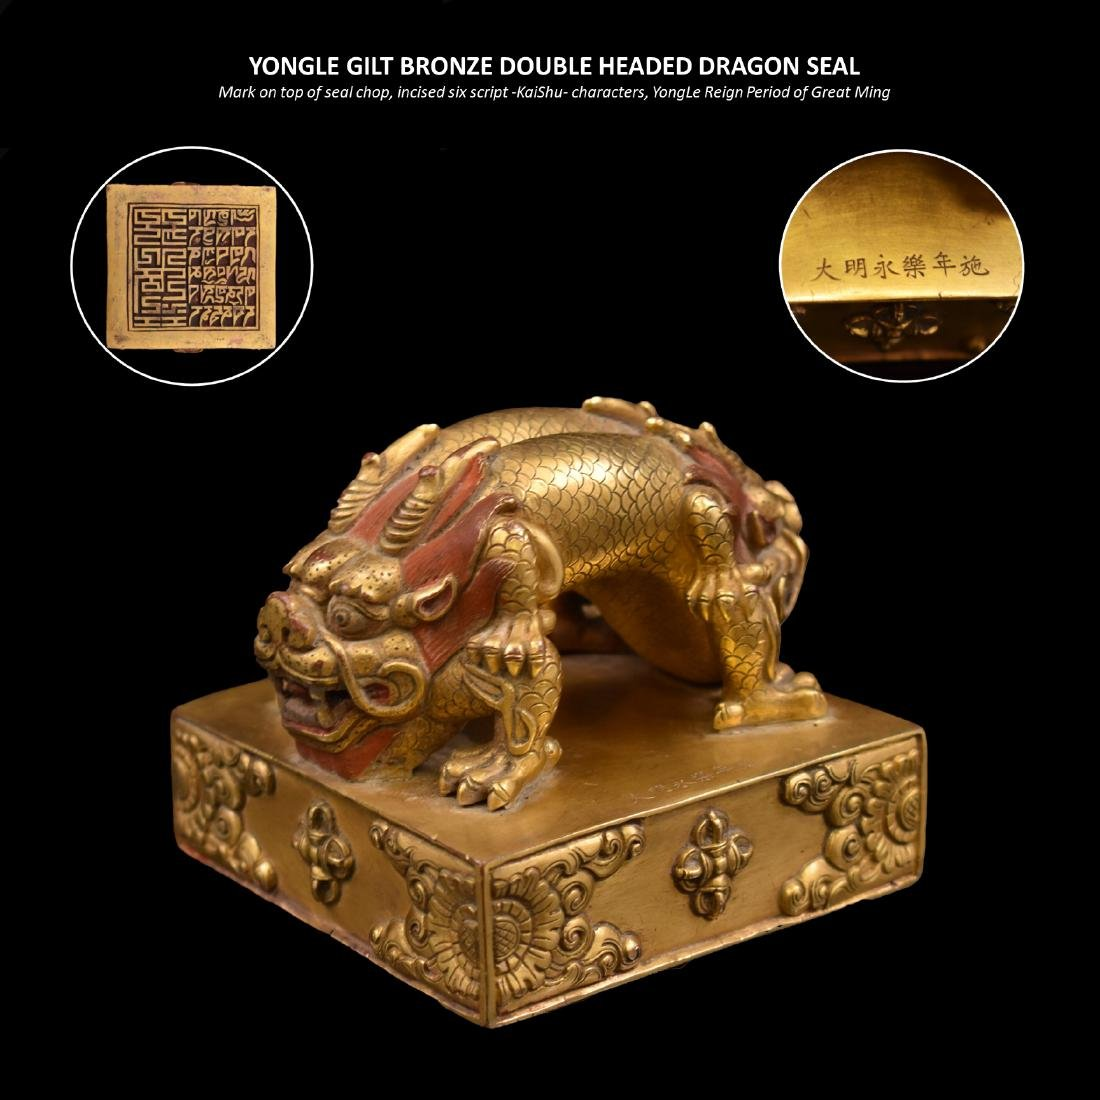 YONGLE GILT BRONZE DOUBLE HEADED DRAGON SEAL